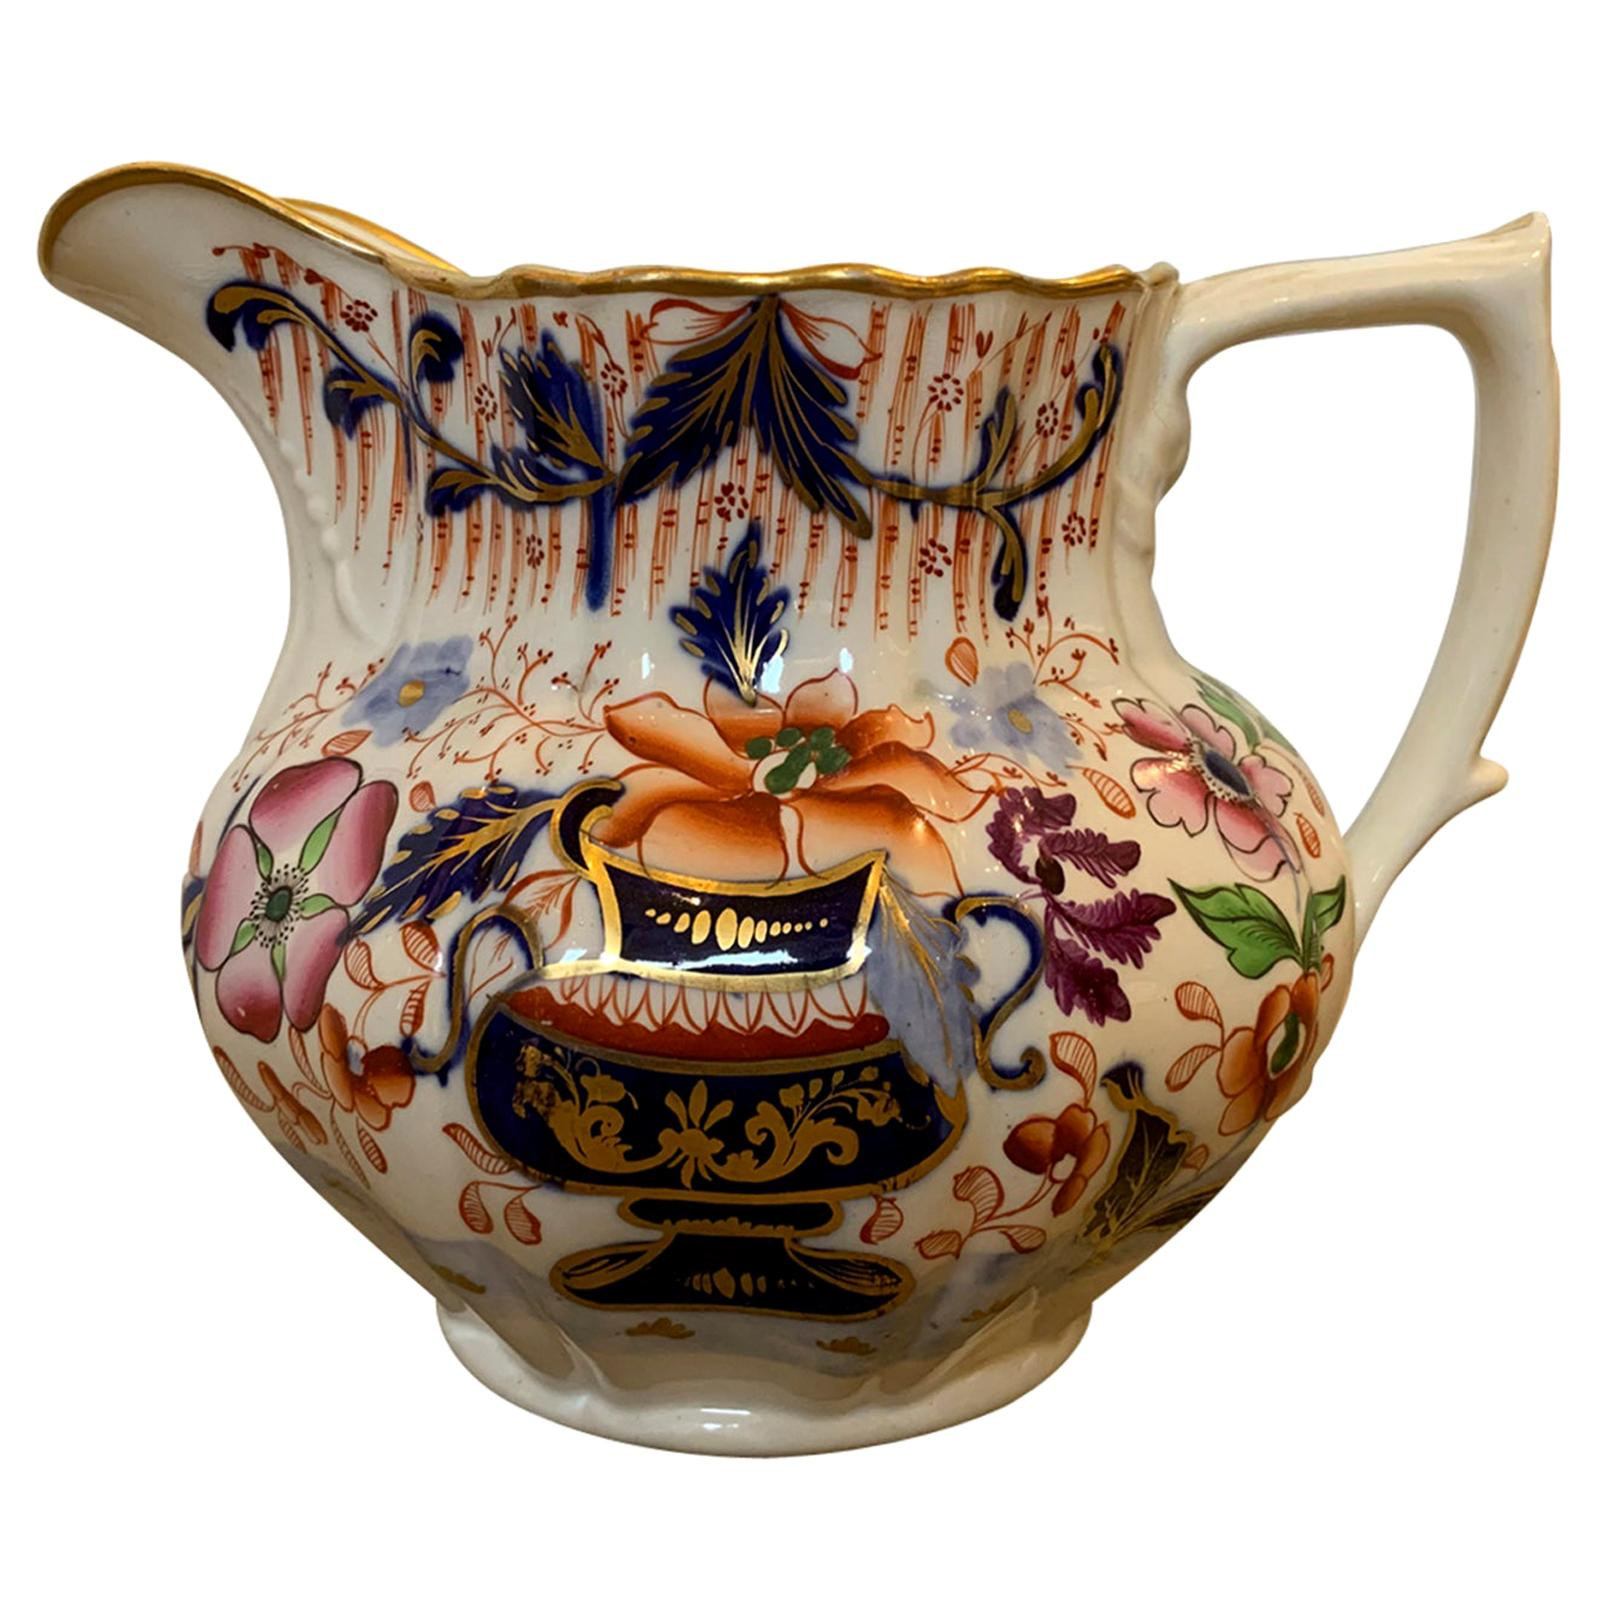 19th Century English Cobalt Blue and Orange Porcelain Pitcher with Gilt Details